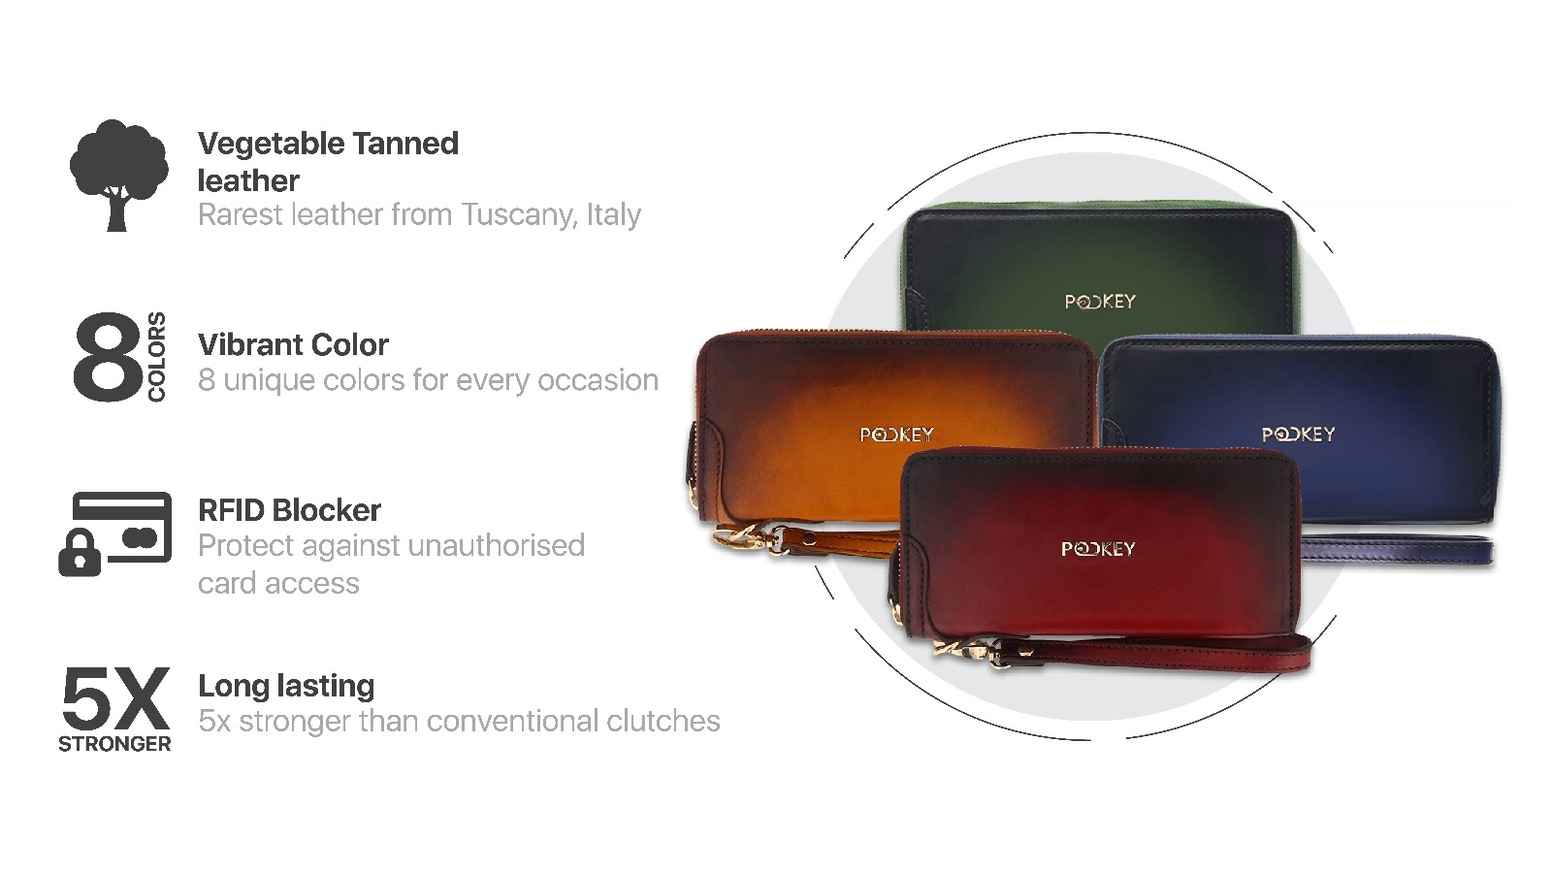 World's 1st Smart Clutch, handcrafted from Premium Vegetable Tanned Leather, 5x more durable with RFID blocker to protect your cards